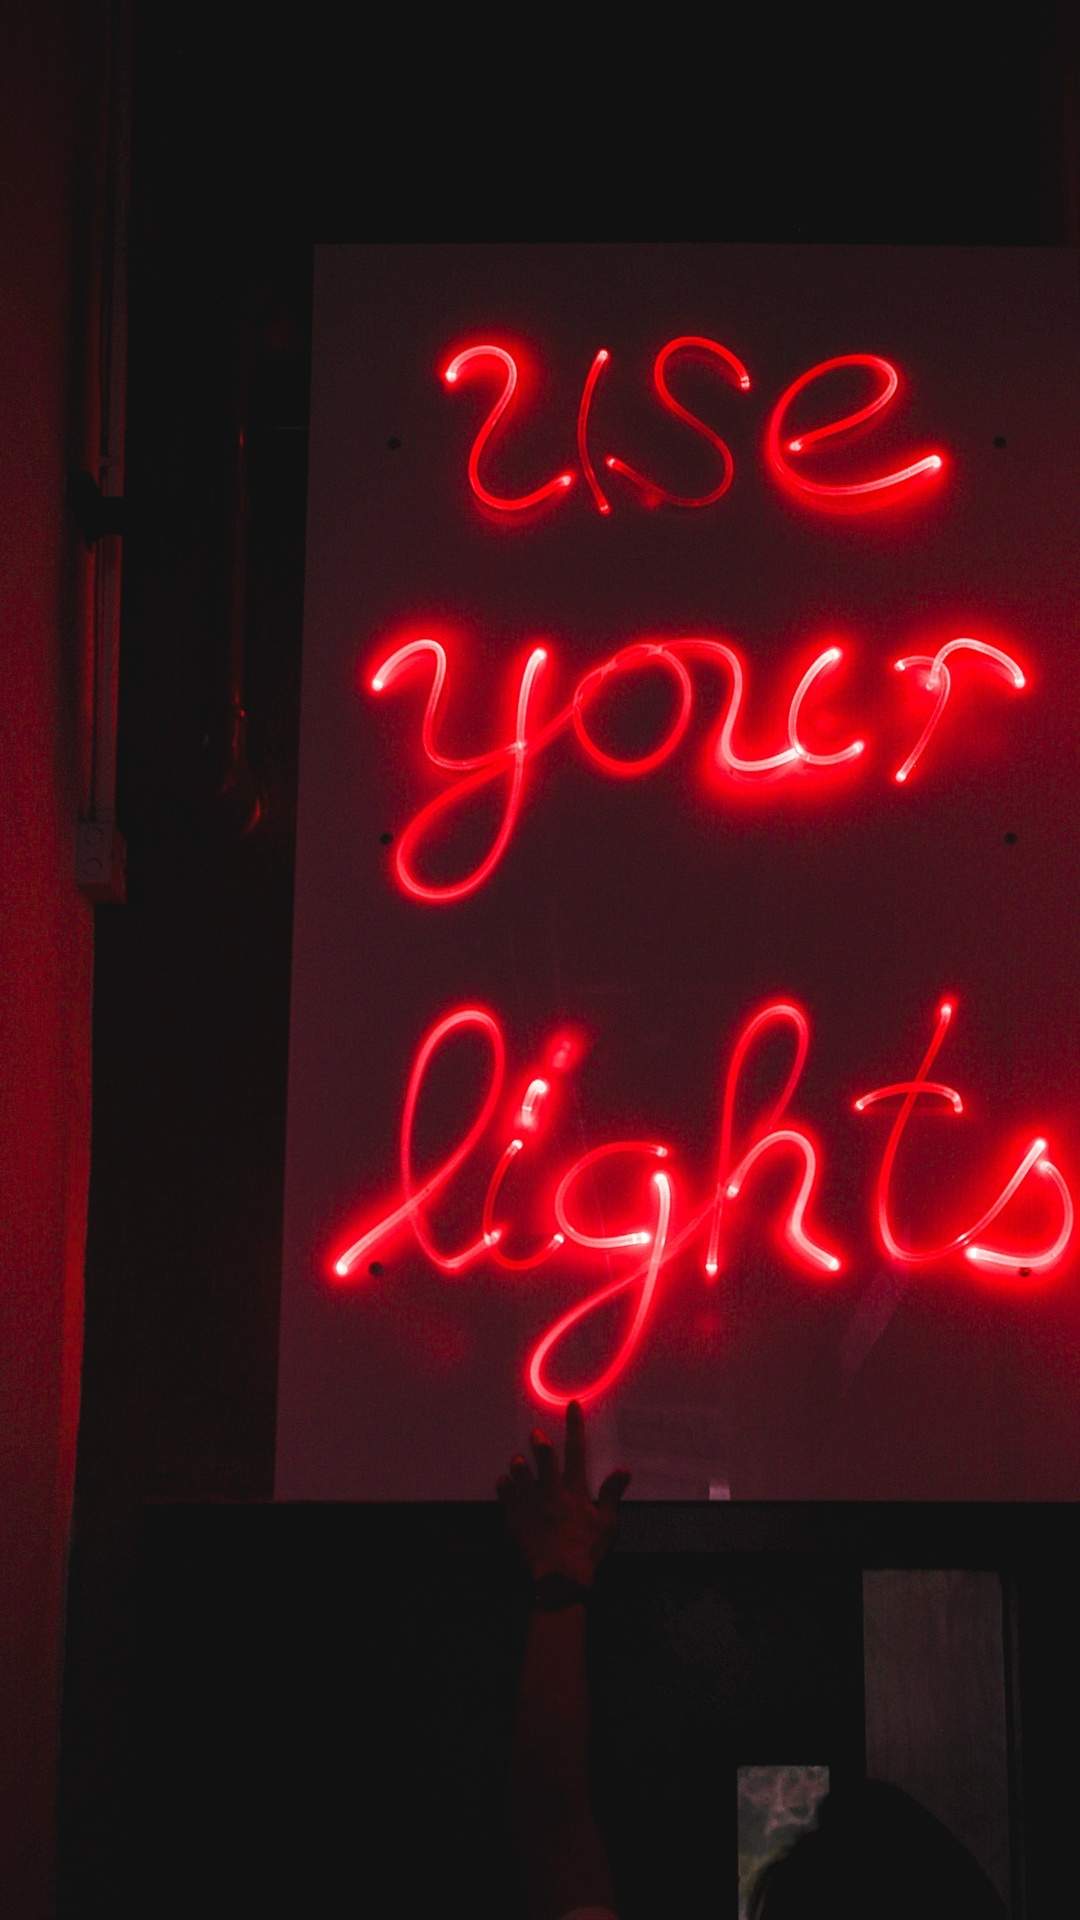 Red Neon Lights Inscription Darkness Iphone X 8 7 6 5 4